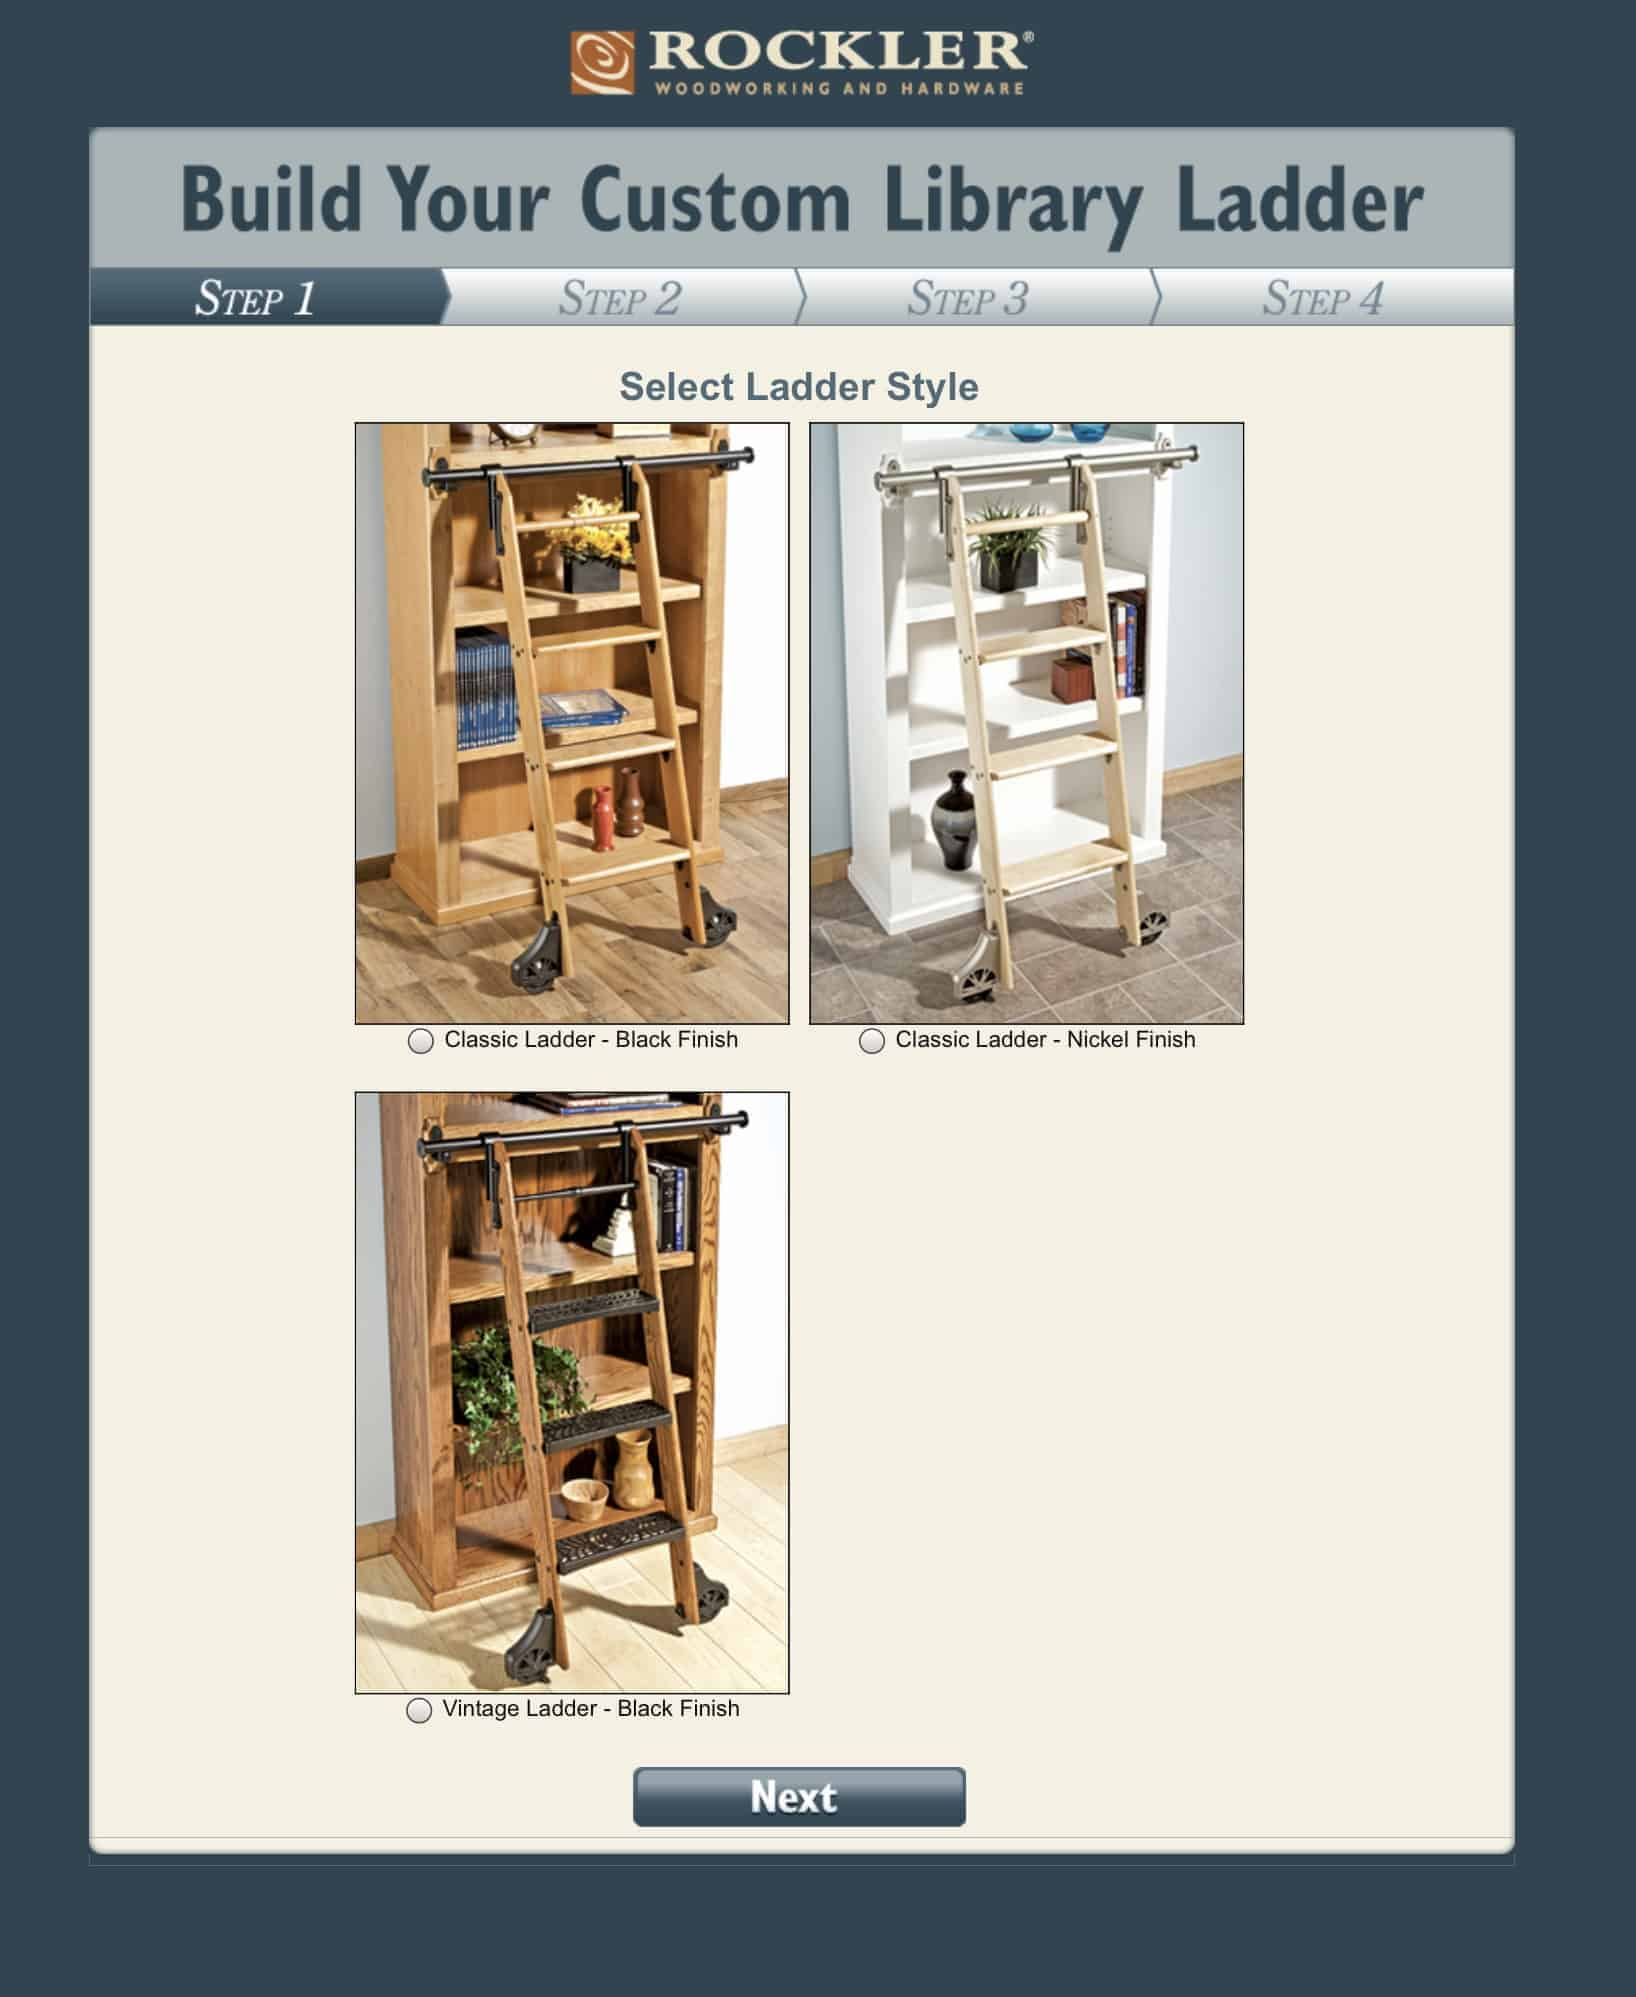 How To Build And Install The Rockler Library Ladder Kit The Aspiring Home